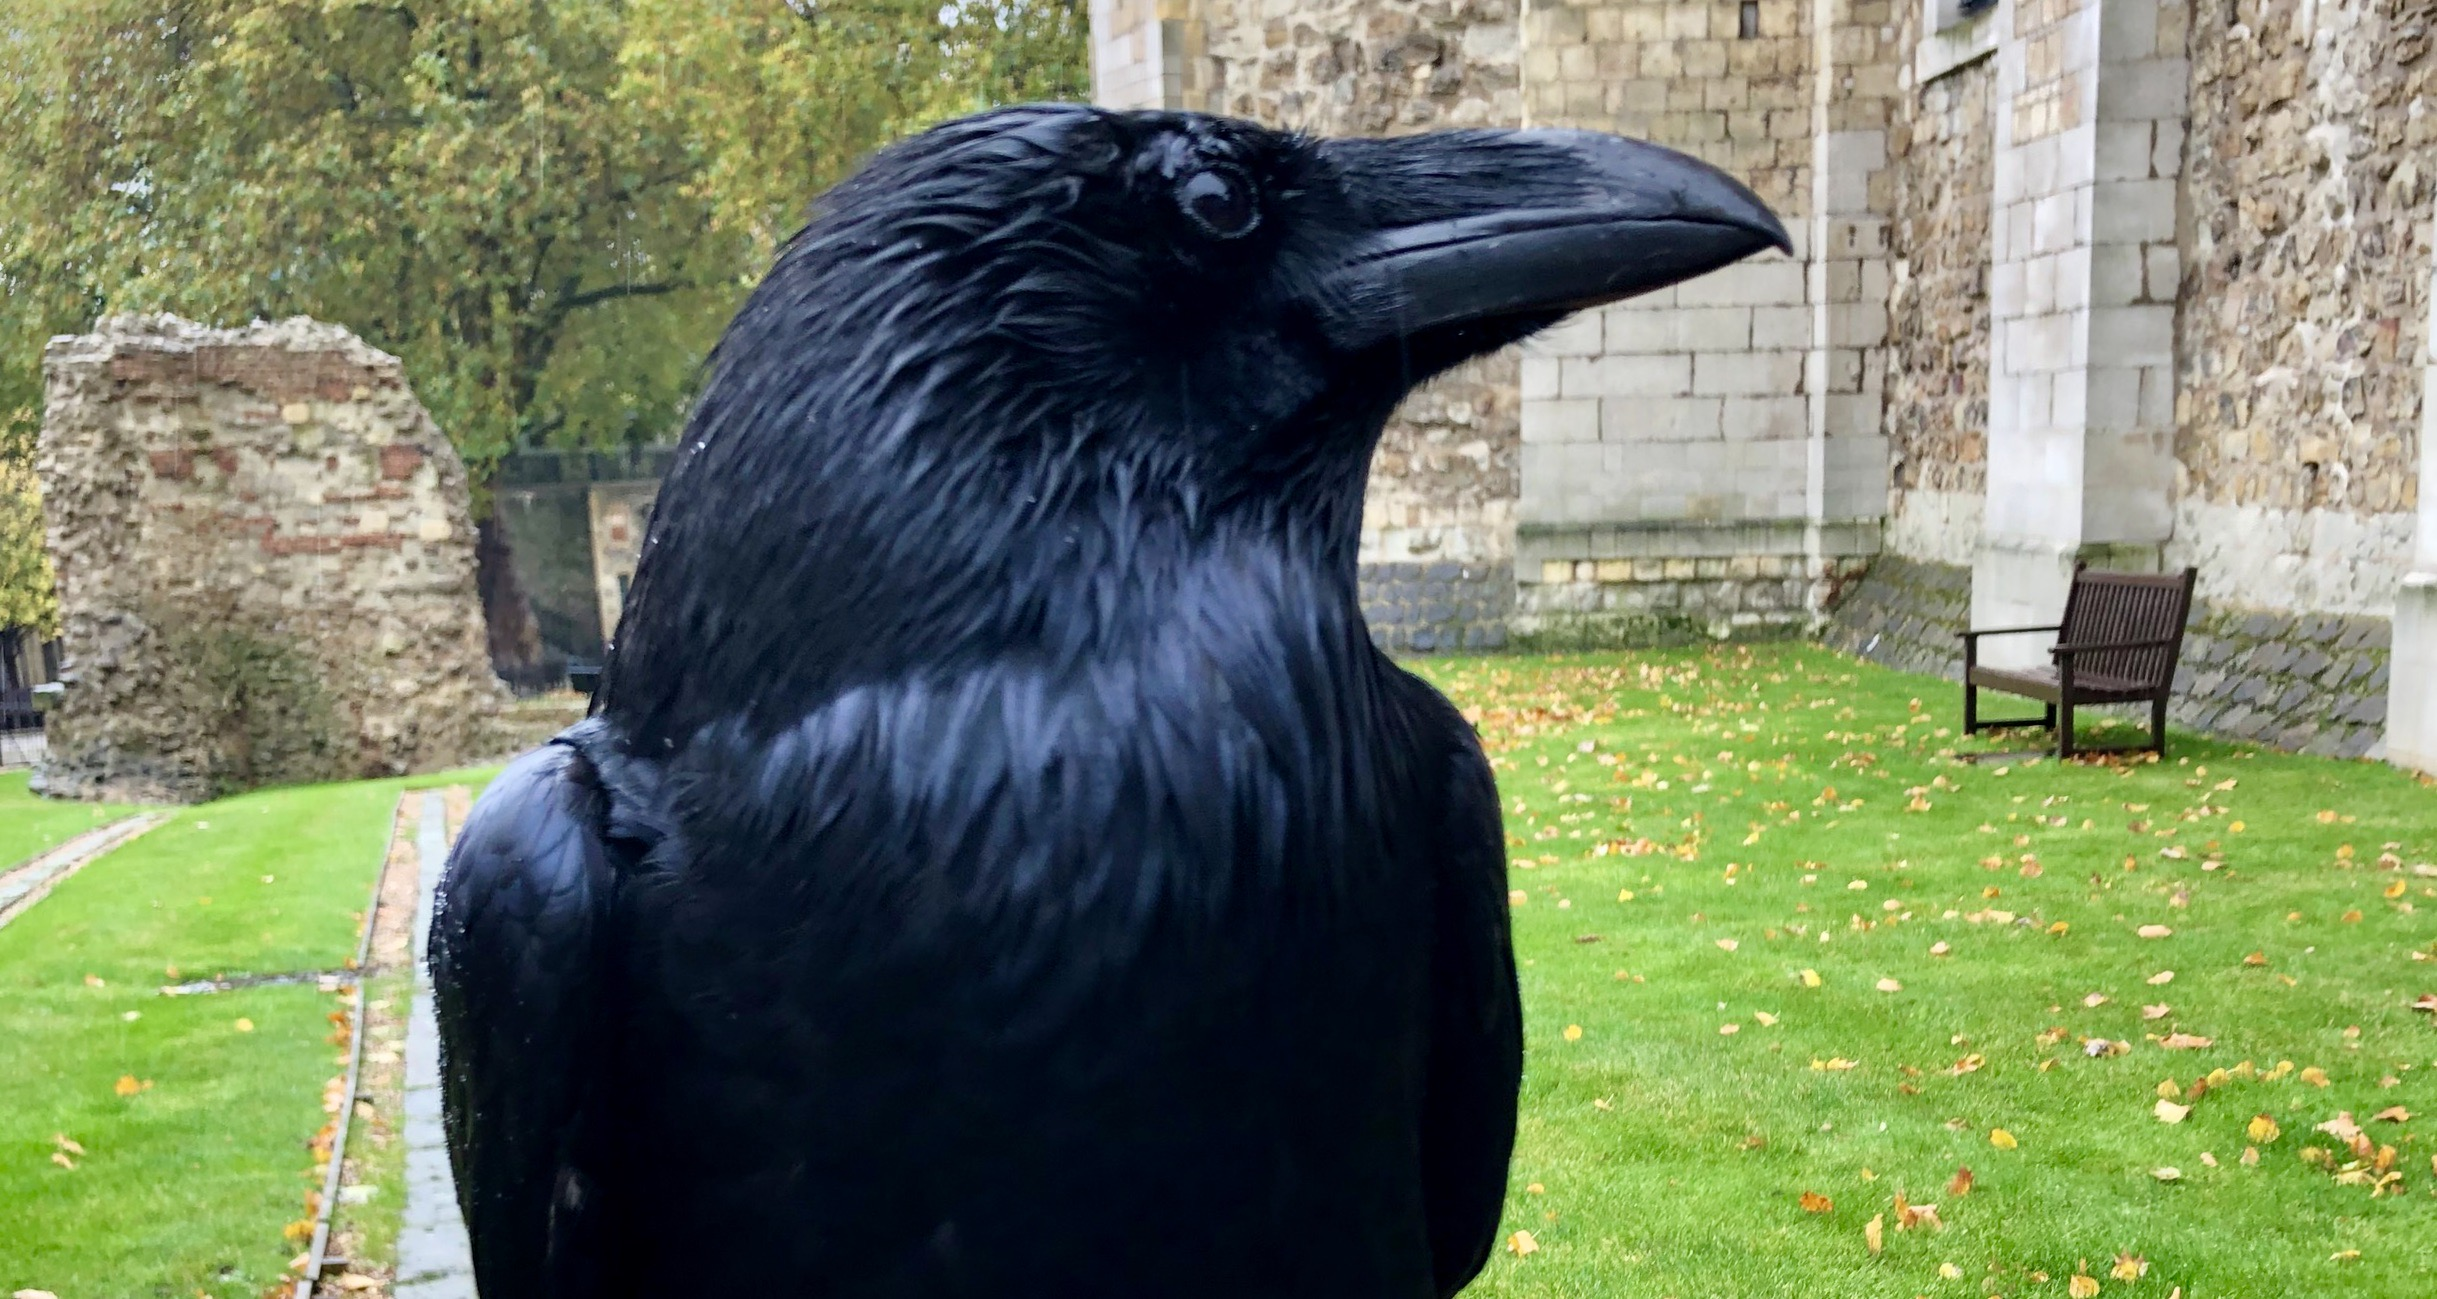 Queen raven at Tower of London 'missing and feared dead'